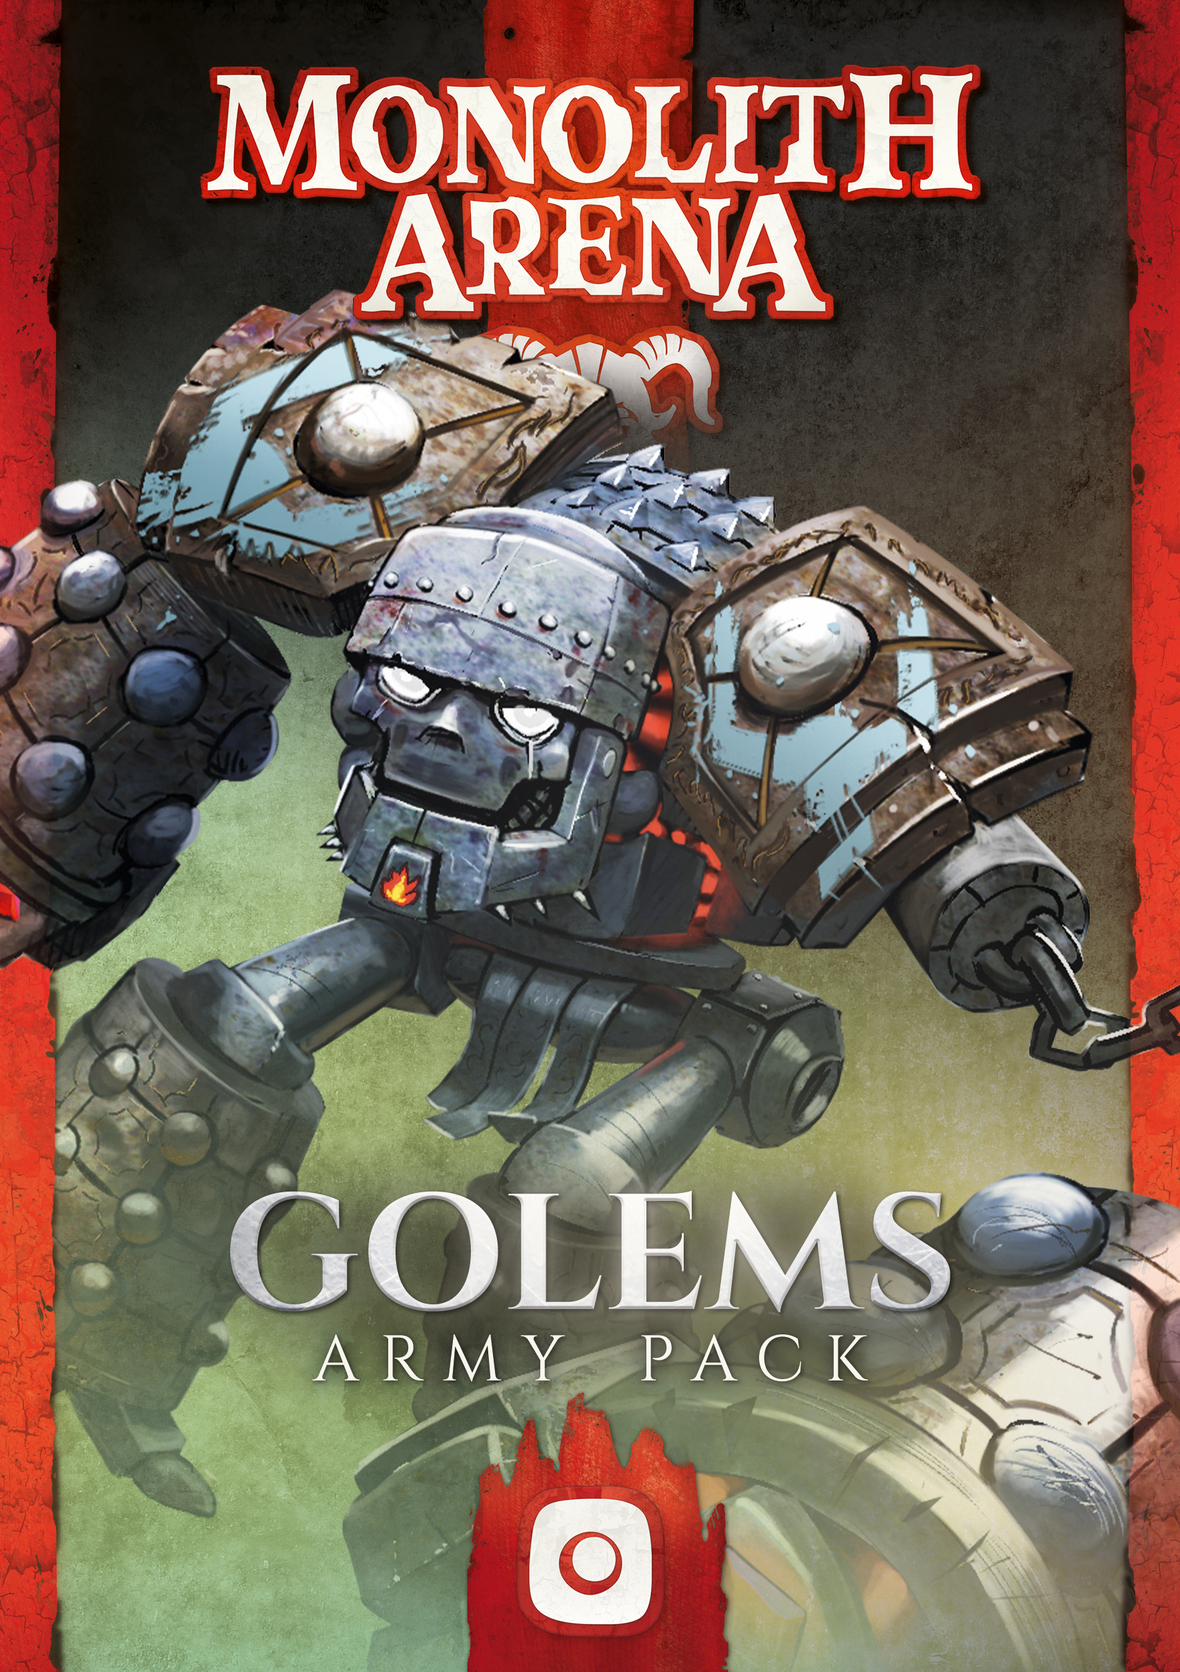 MA golems BOX IN front